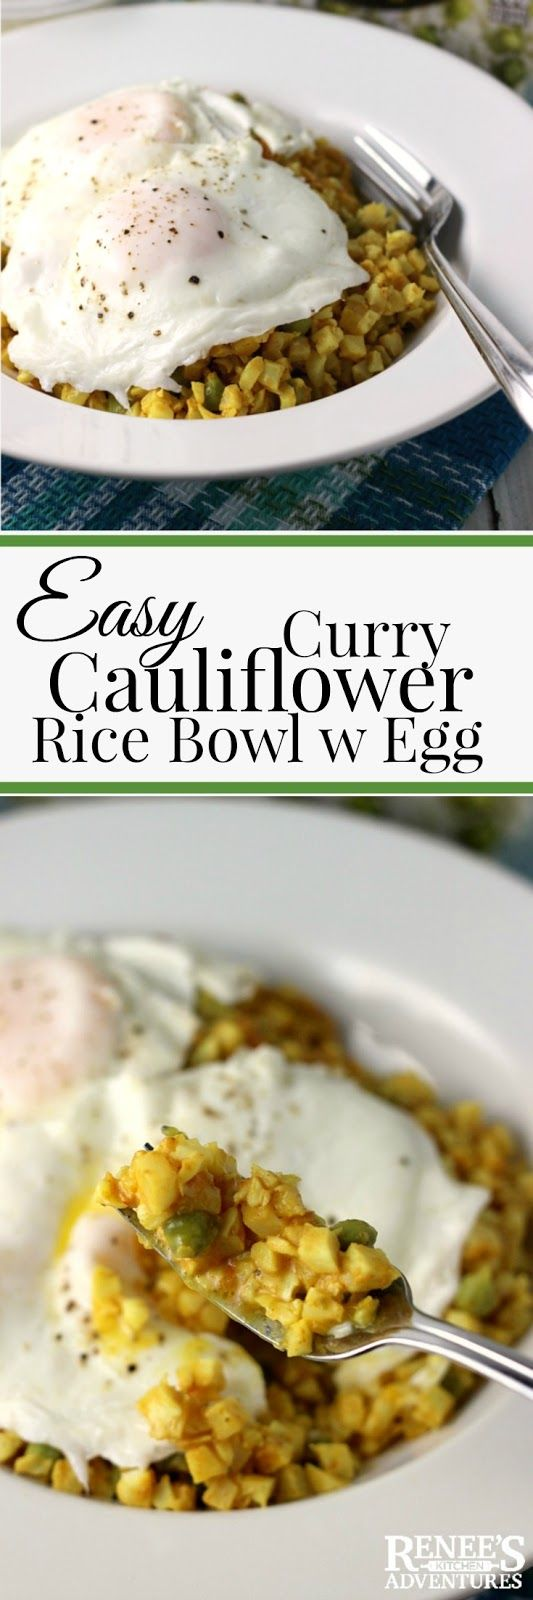 Easy Curry Cauliflower Rice Bowl with Egg   Renee's Kitchen Adventures - easy, healthy recipe for a veggie bowl topped with eggs perfect for breakfast, lunch, dinner or snack! #SundaySupper #Nourish2Flourish @veggiesmadeeasy